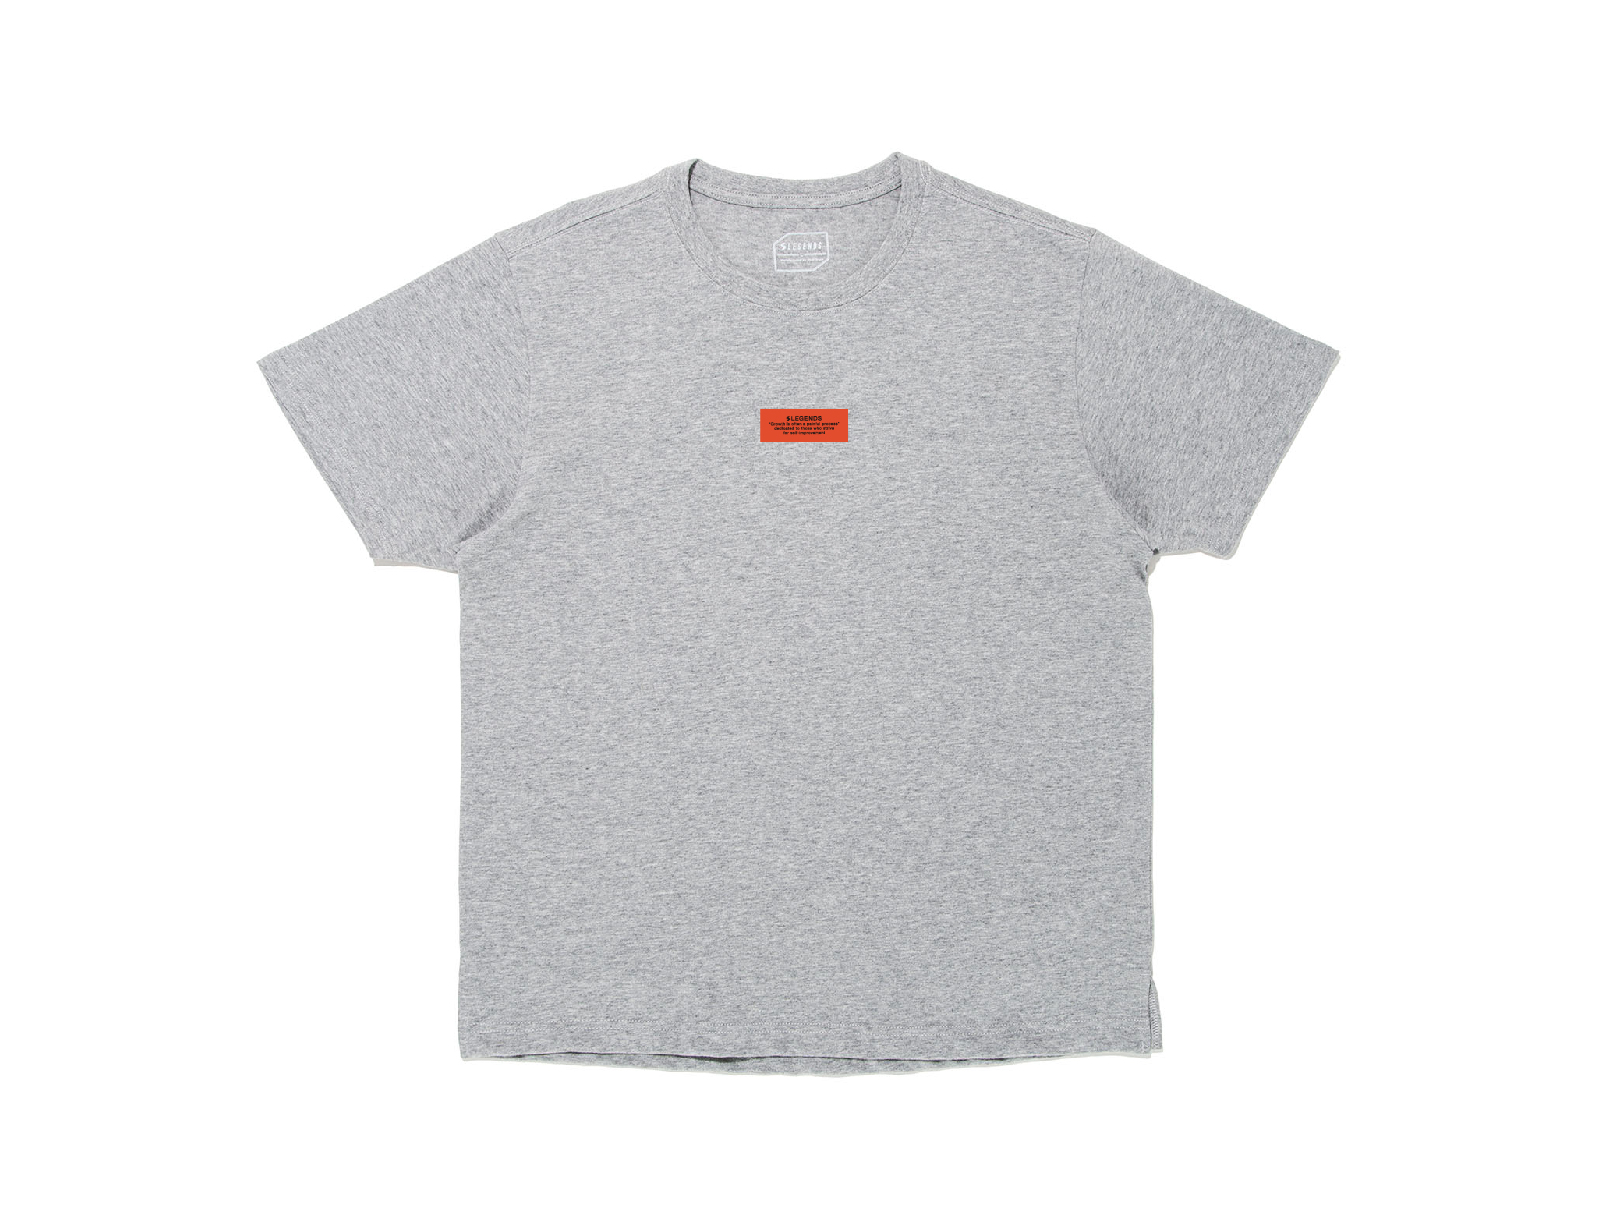 COTTON TICKET GRAPHIC S/S TEE